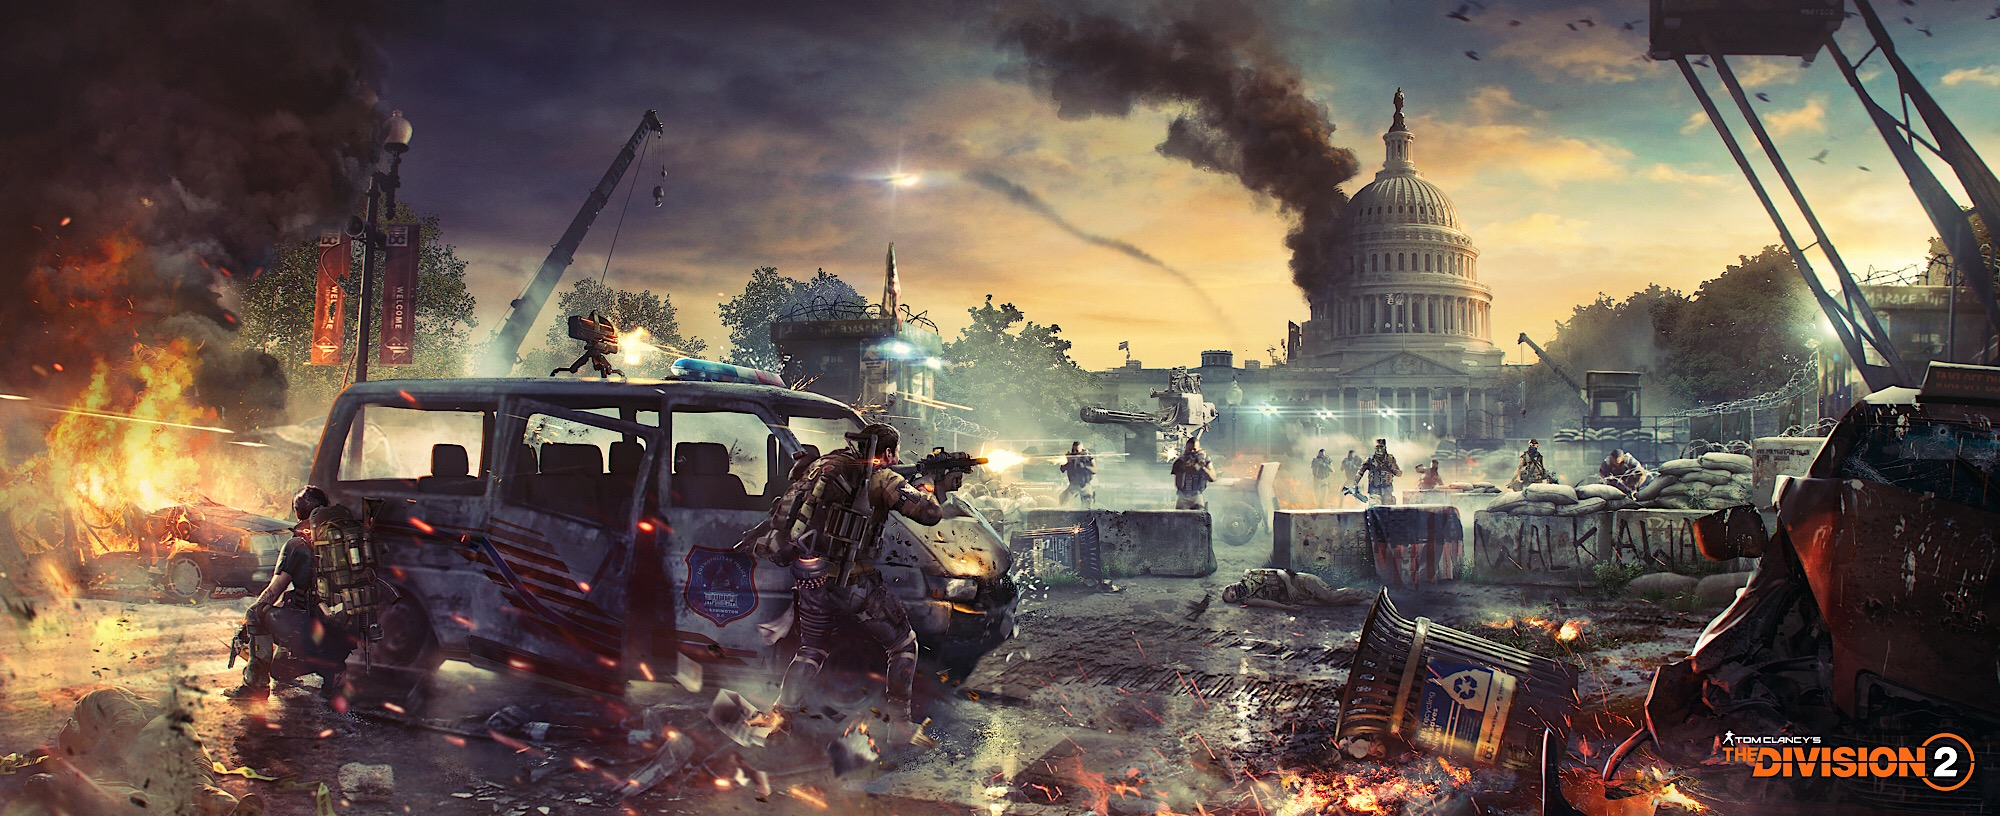 The Division 2 Ubisoft Aftershow Video, Screenshots, Other ...